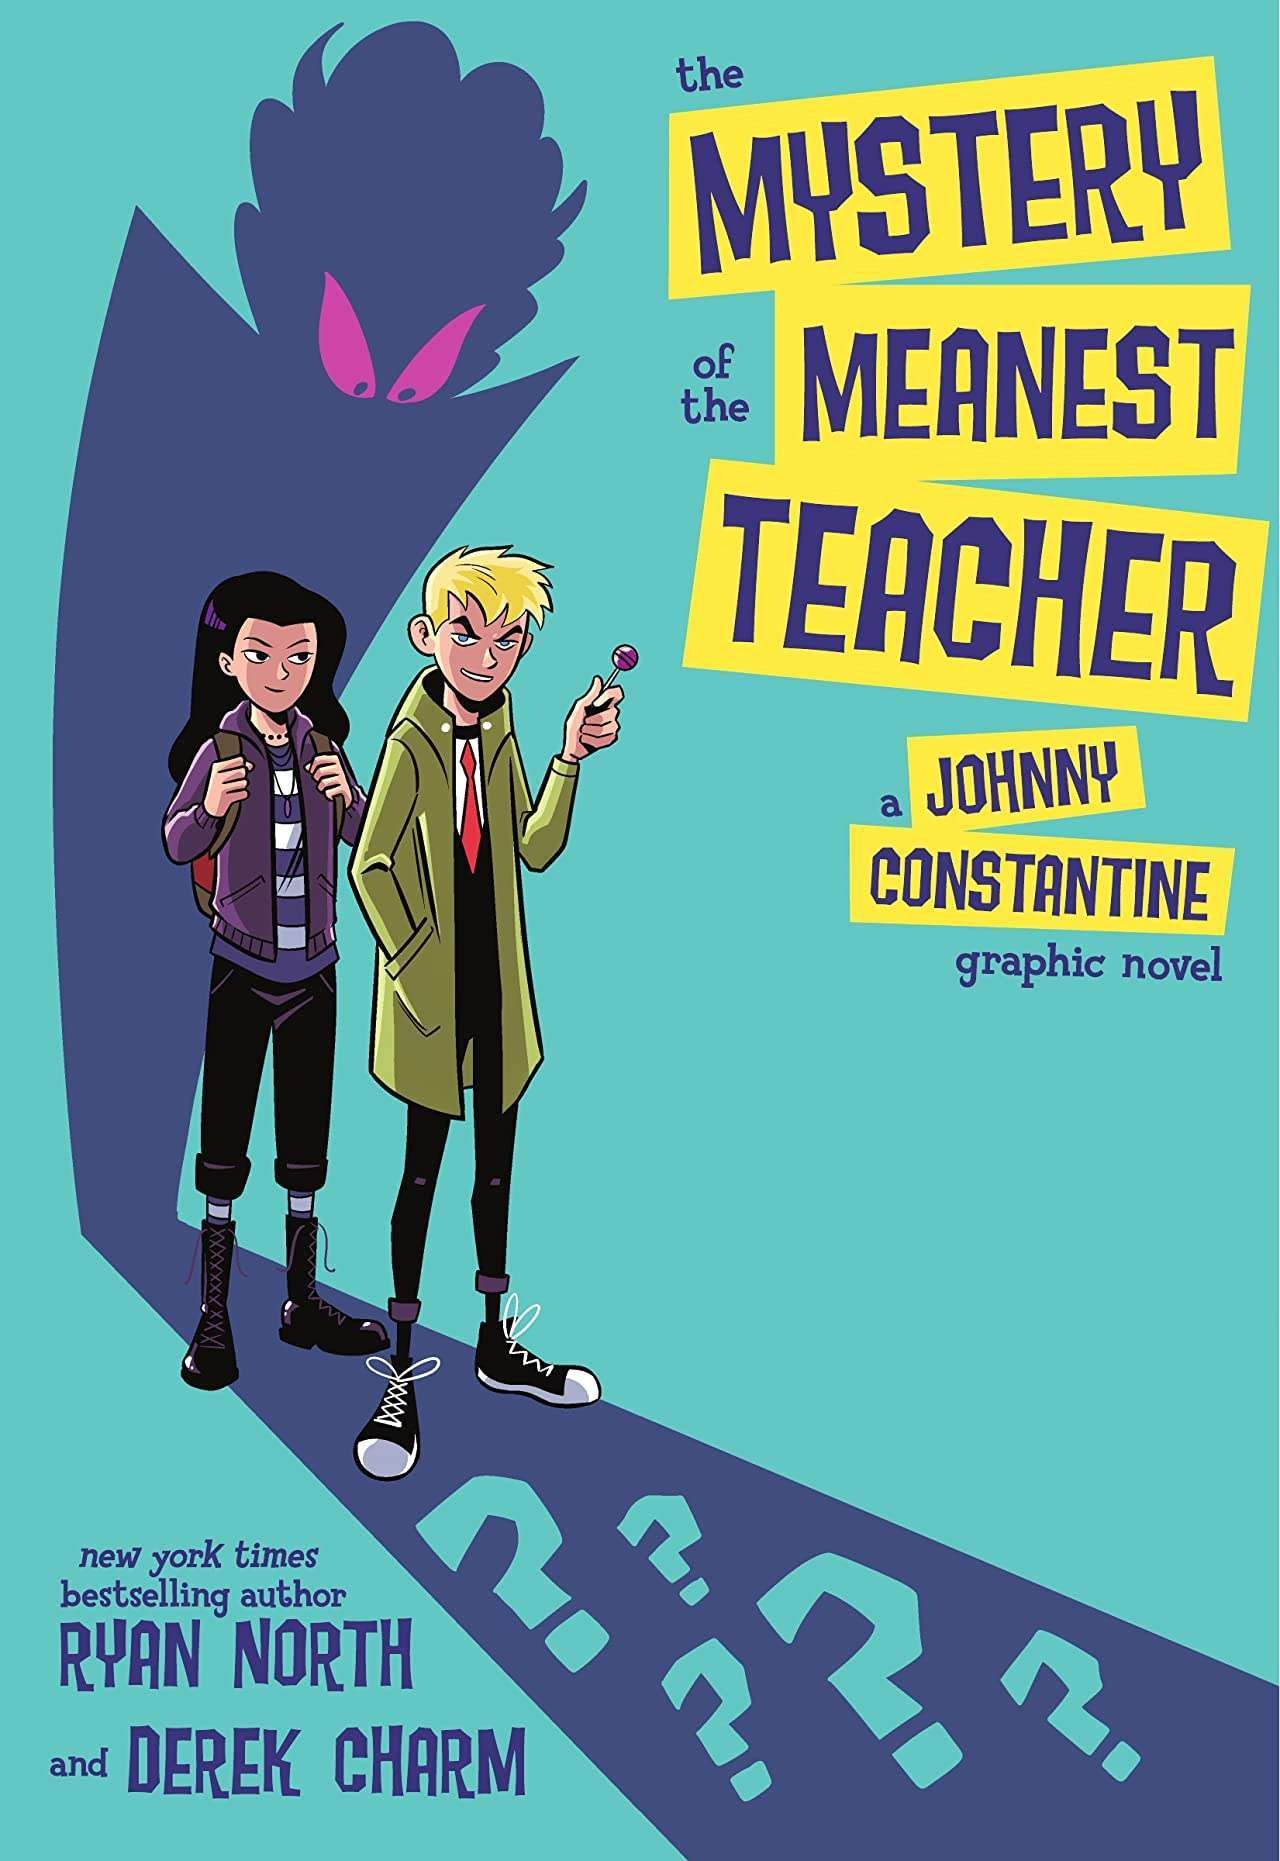 The Mystery of the Meanest Teacher A Johnny Constantine Graphic Novel